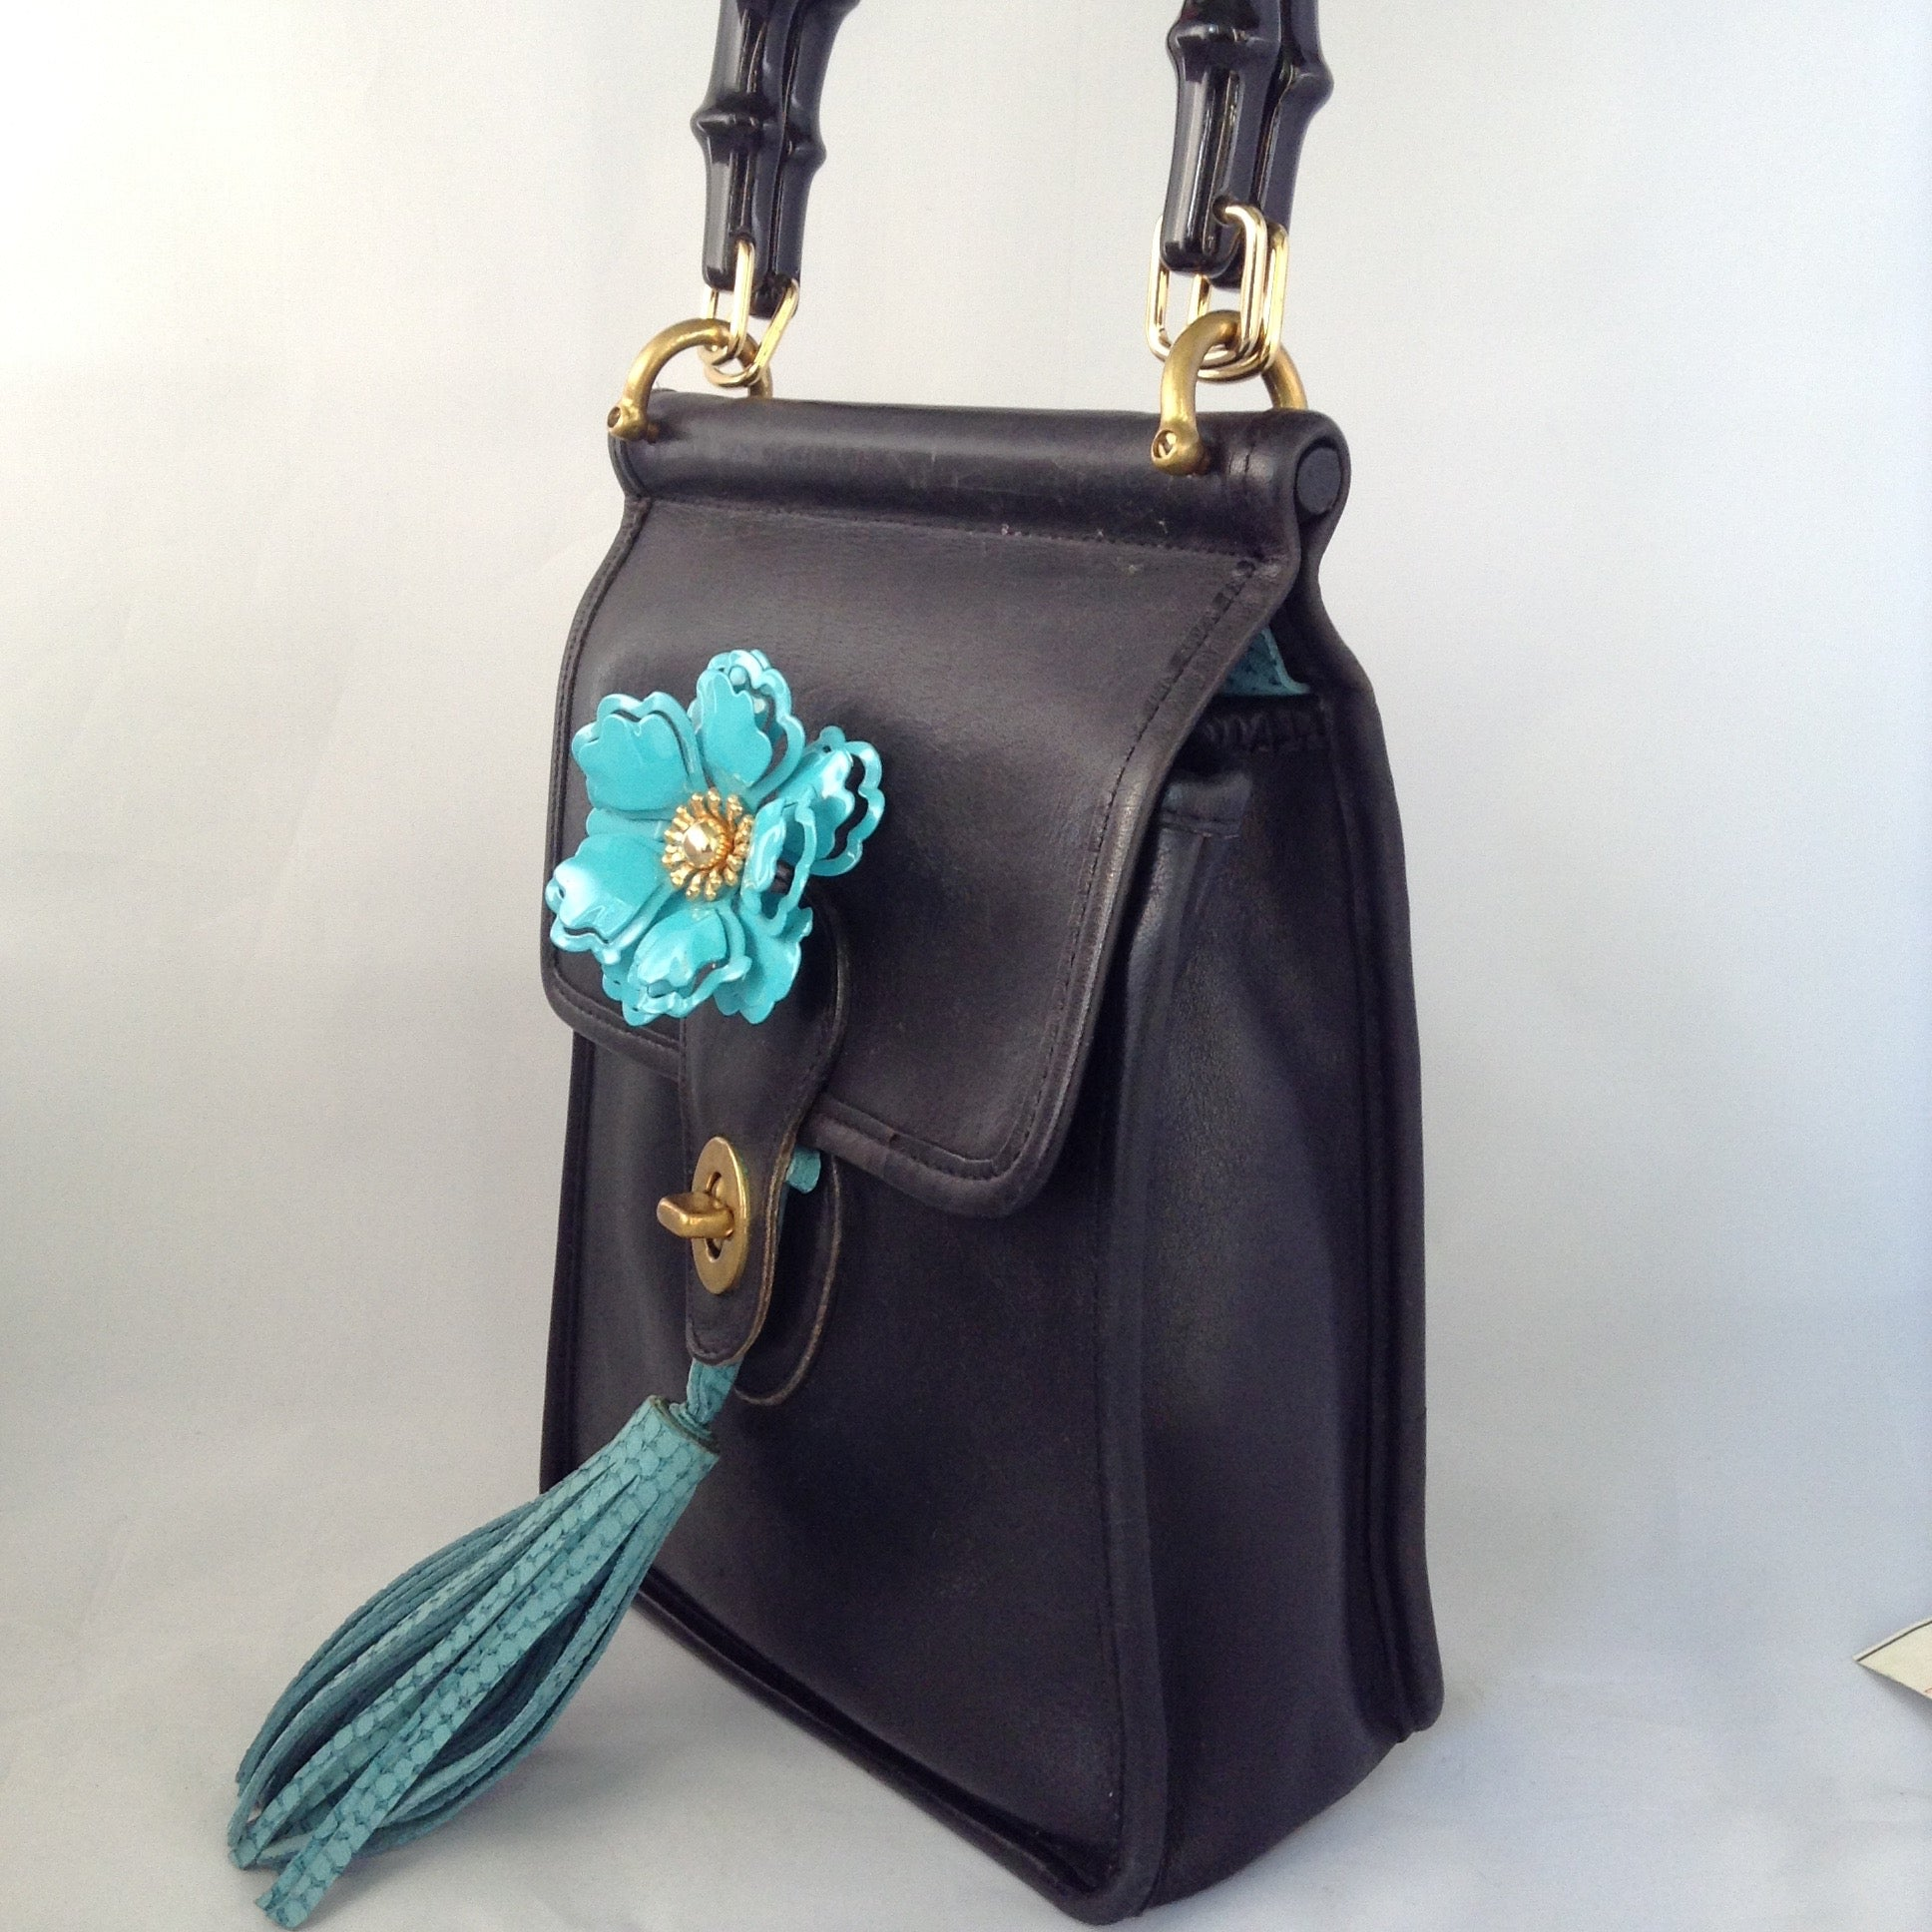 "Formerly a staid and serious Coach mailbag, this supple black glove leather vintage purse becomes witty and charming with its enamel flower and new teal suede tassel and lining.  Dimensions - Height 9""; Width 7""; Depth 3"""